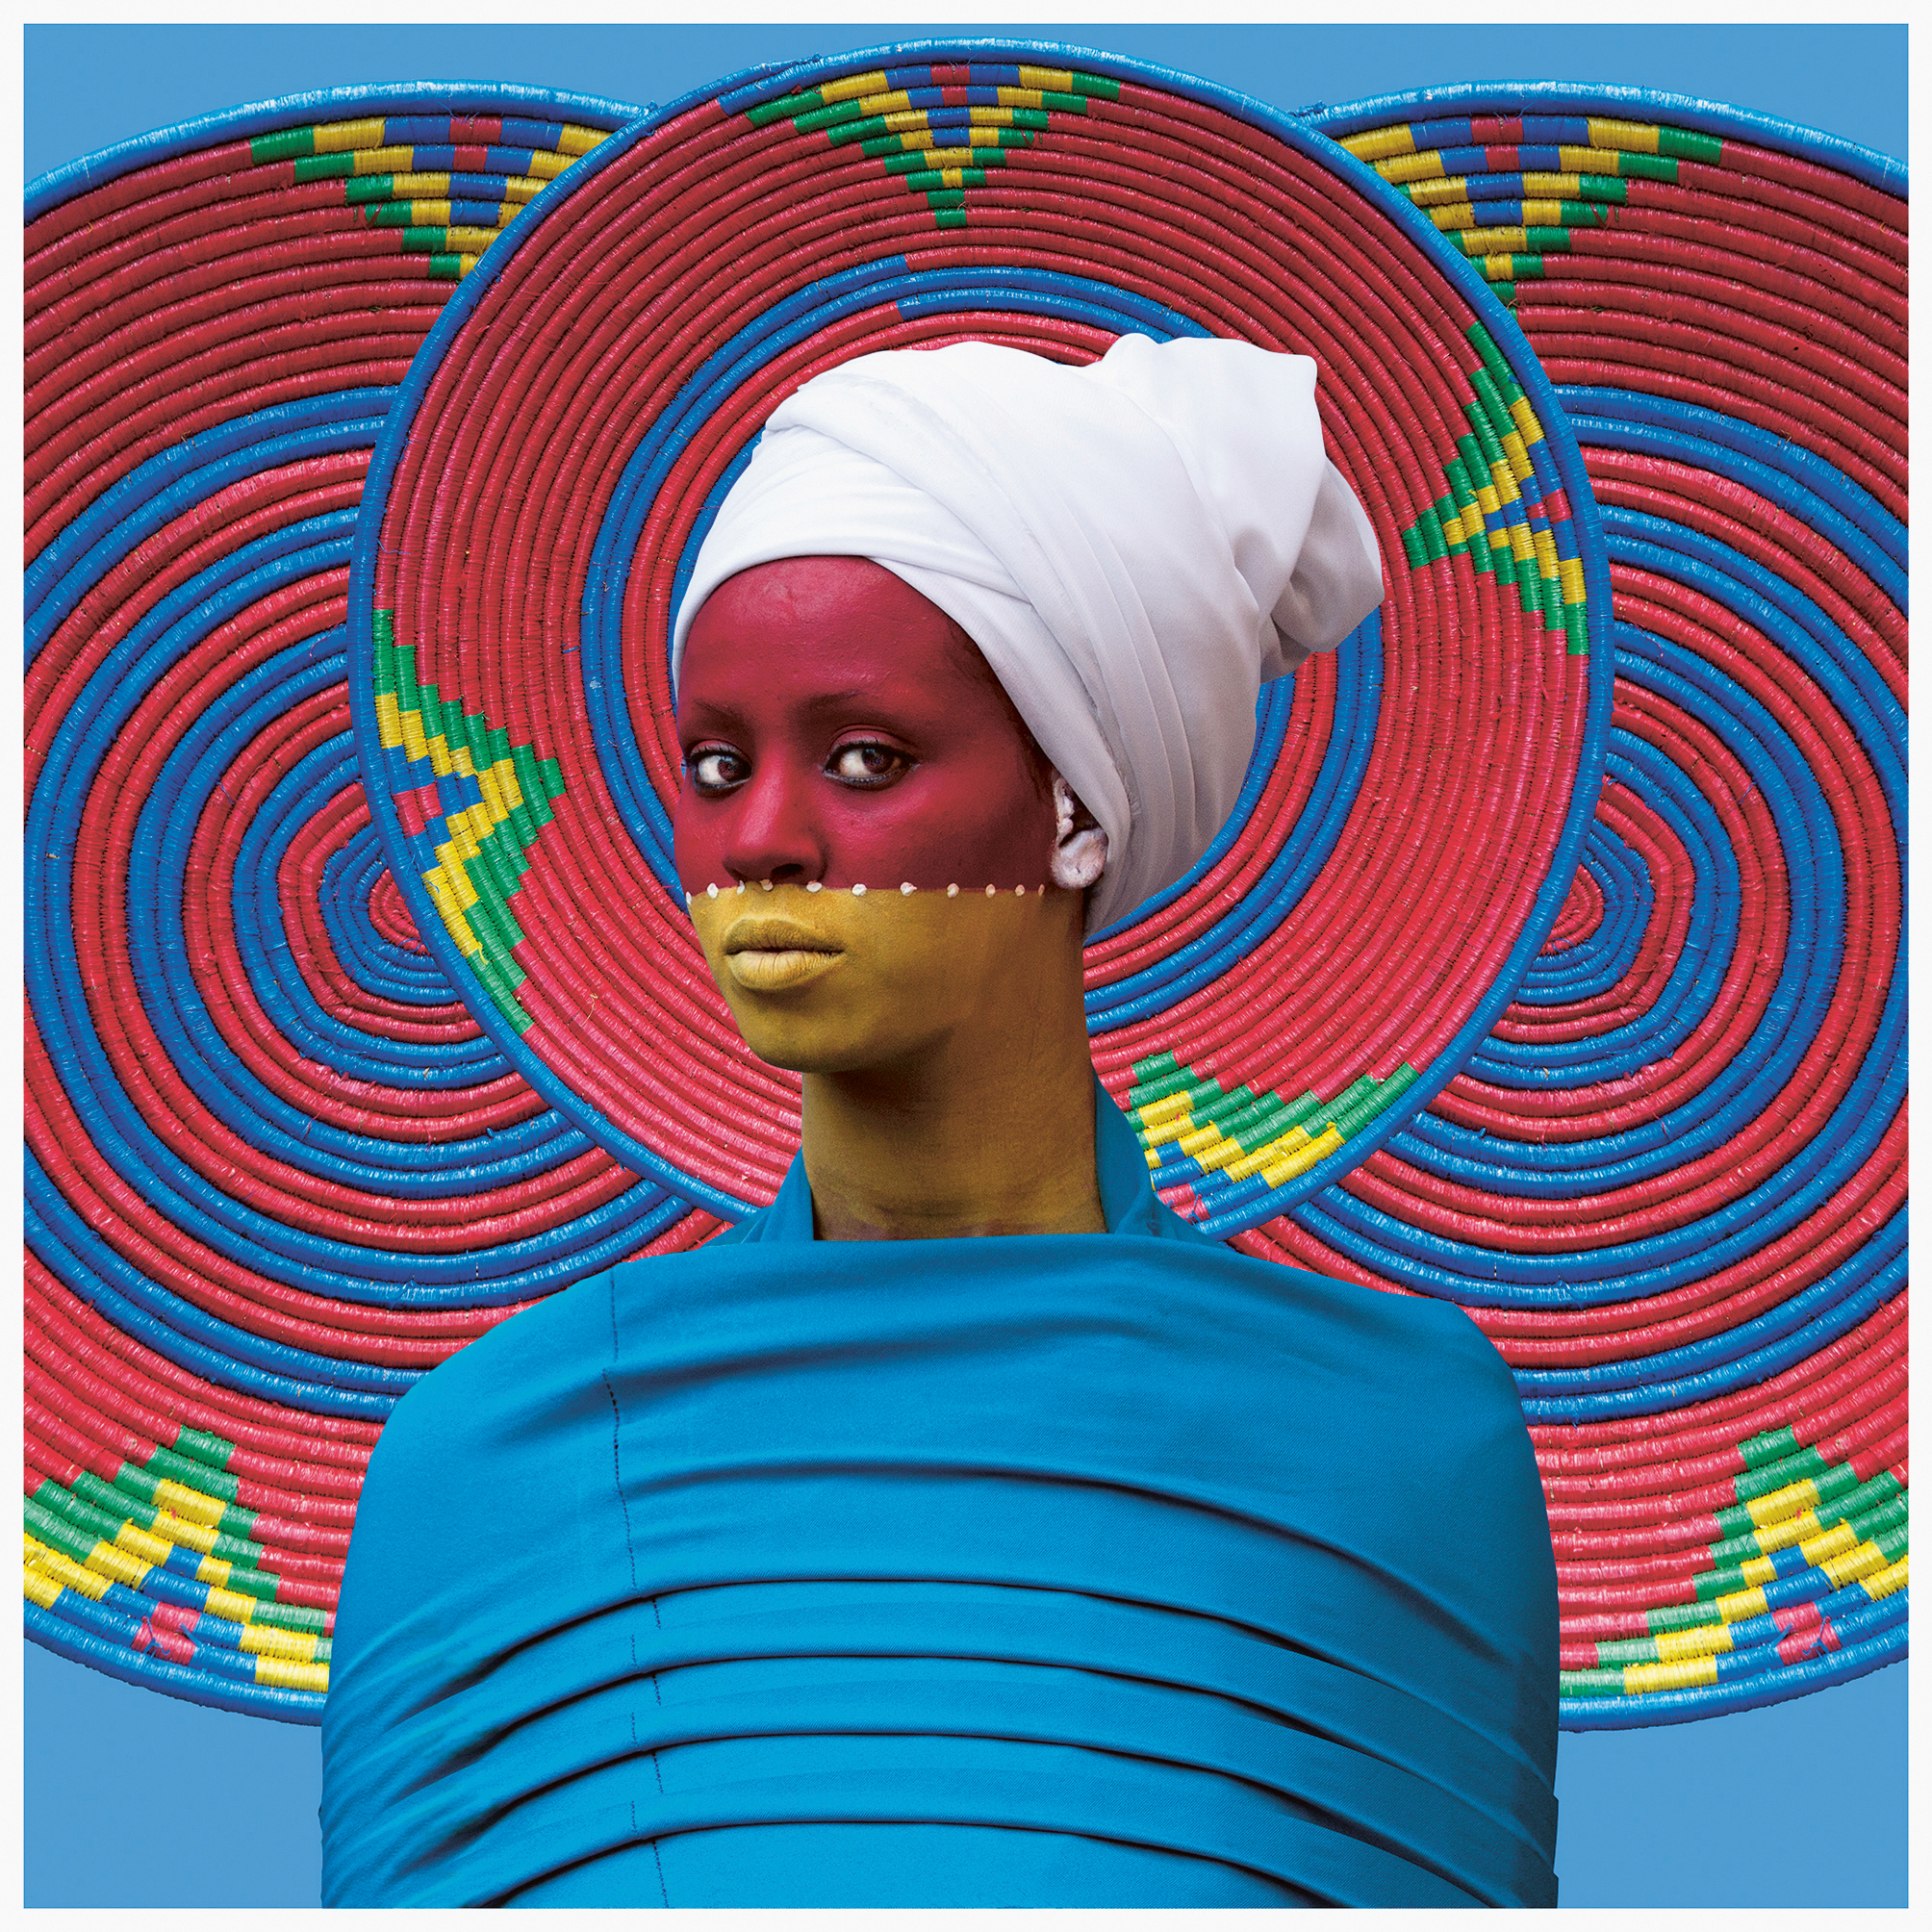 The Best New Books on Contemporary African Art